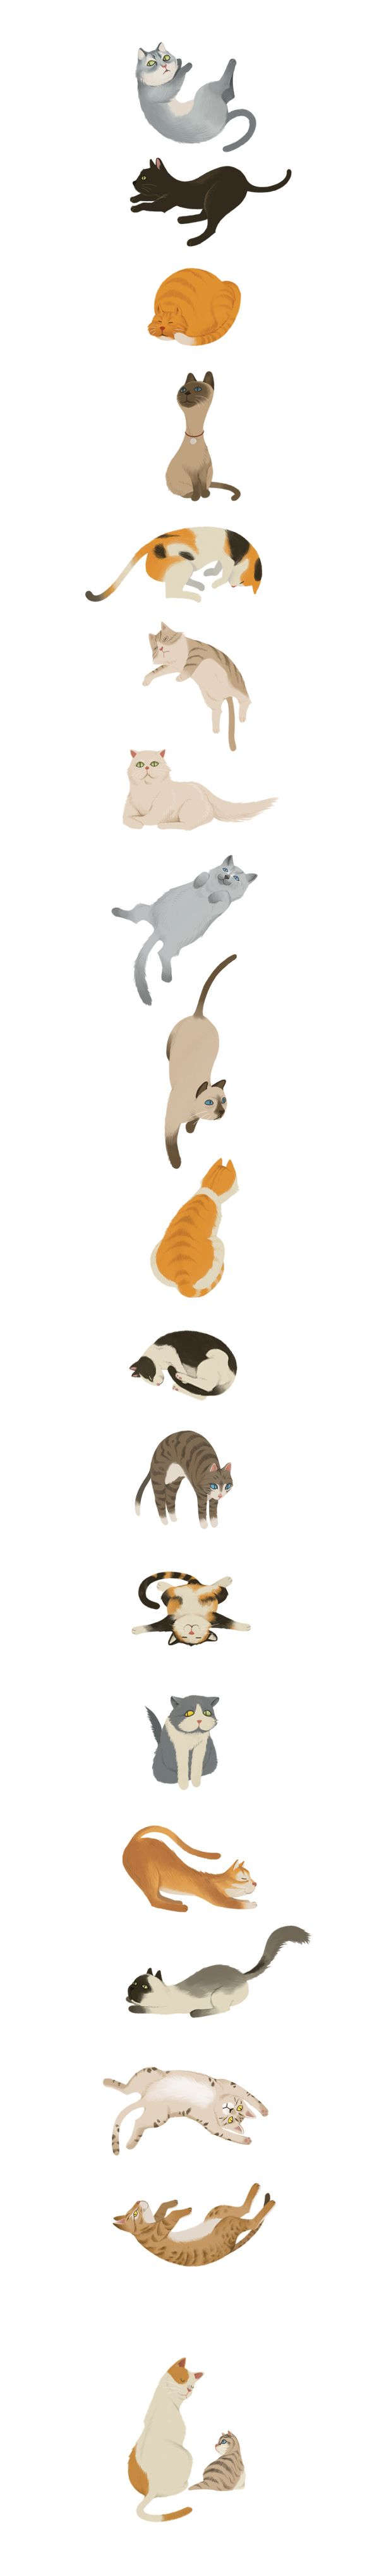 Cats by Wonho Jung #cats #CatIllustrations #illustrations